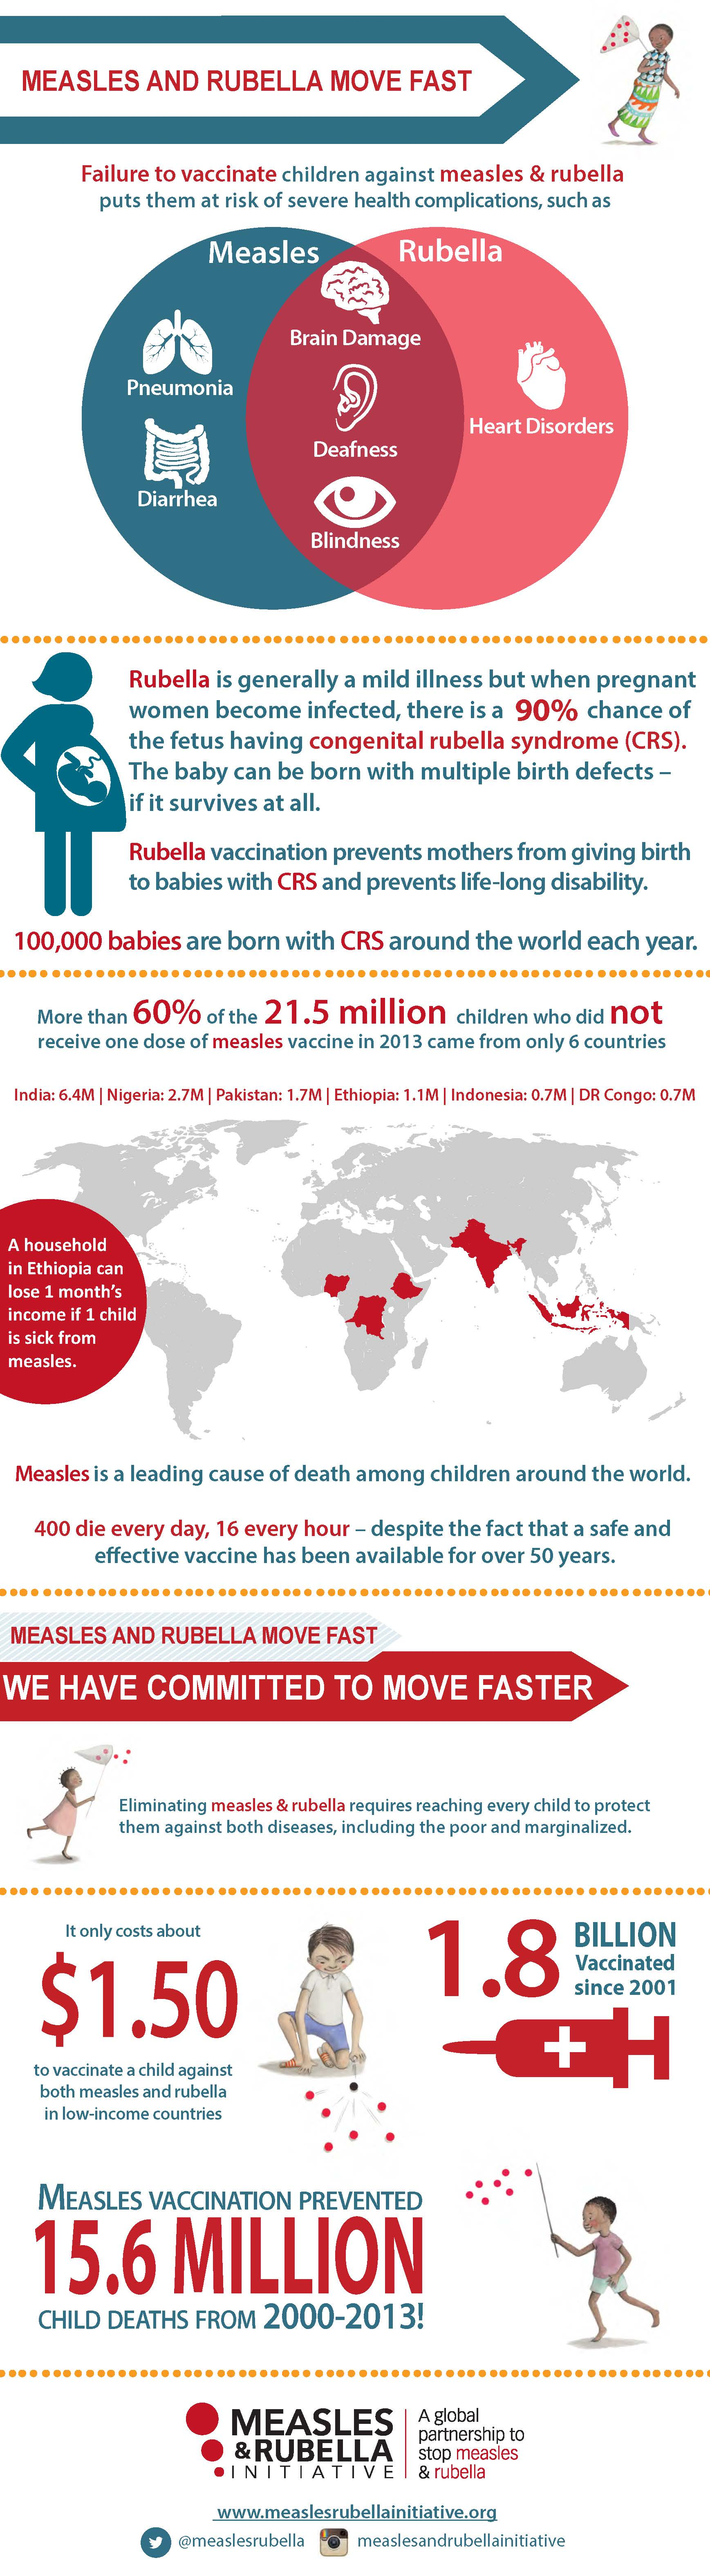 measles2015-infographic